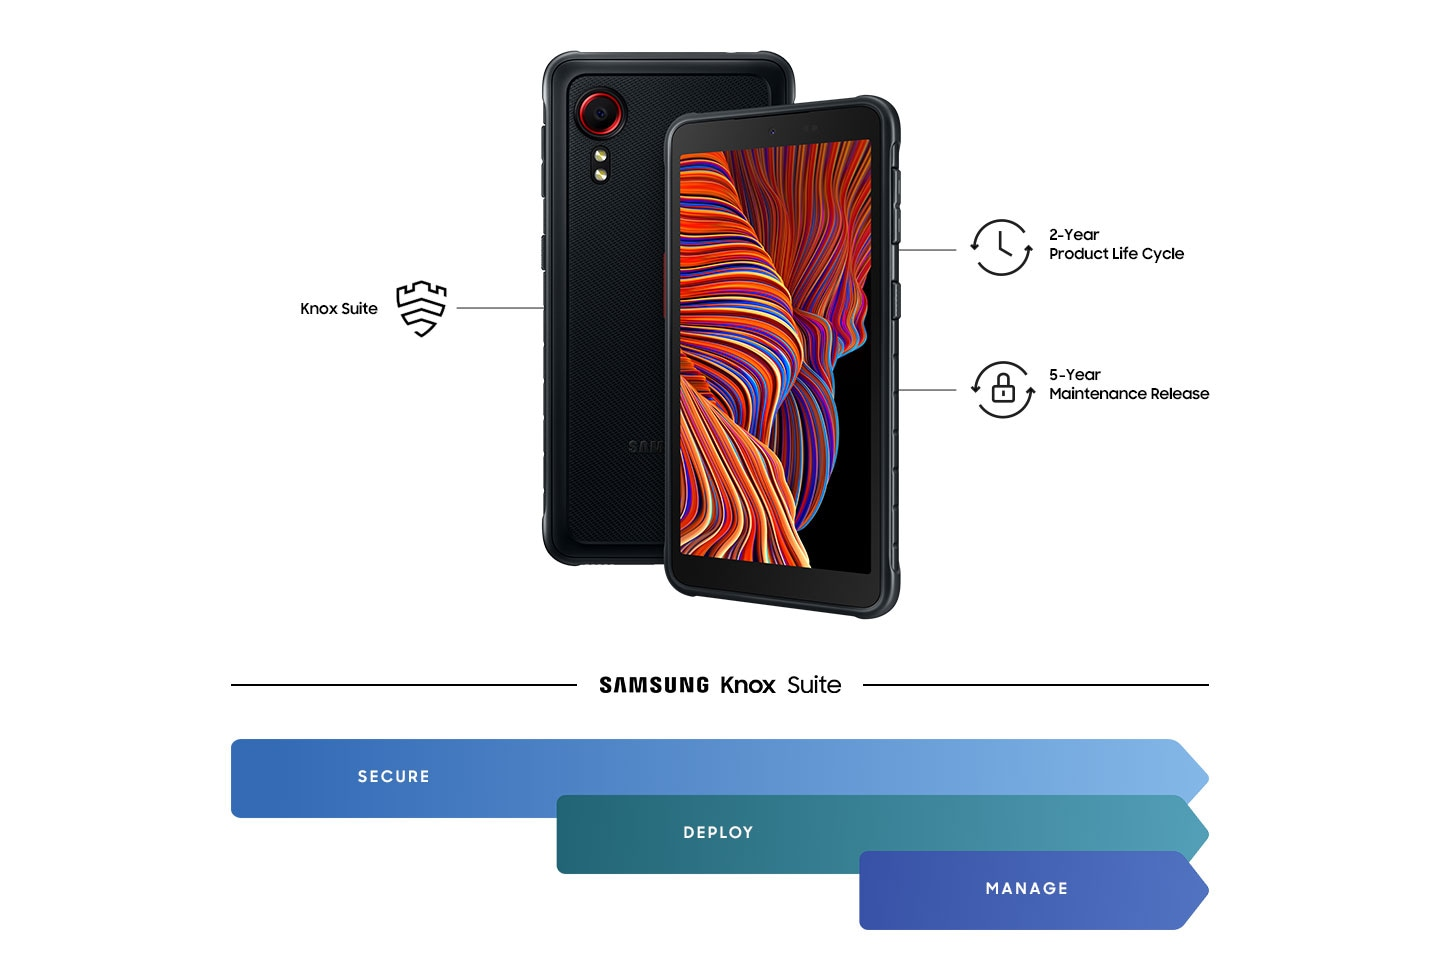 """Two Galaxy XCover 5s in black are side by side, slightly overlapping.  The tilted smartphone with the orange line graphics on the display is on the right-hand side and shows the following symbols and texts: '2 Year Product Life Cycle' and '5 Year Maintenance Release'.  The other rear view of the Galaxy XCover 5 shows the text """"Knox Suite"""".  Below is the Samsung Knox Suite logo and three blue blocks each with the terms """"Secure"""", """"Deploy"""" and """"Manage""""."""